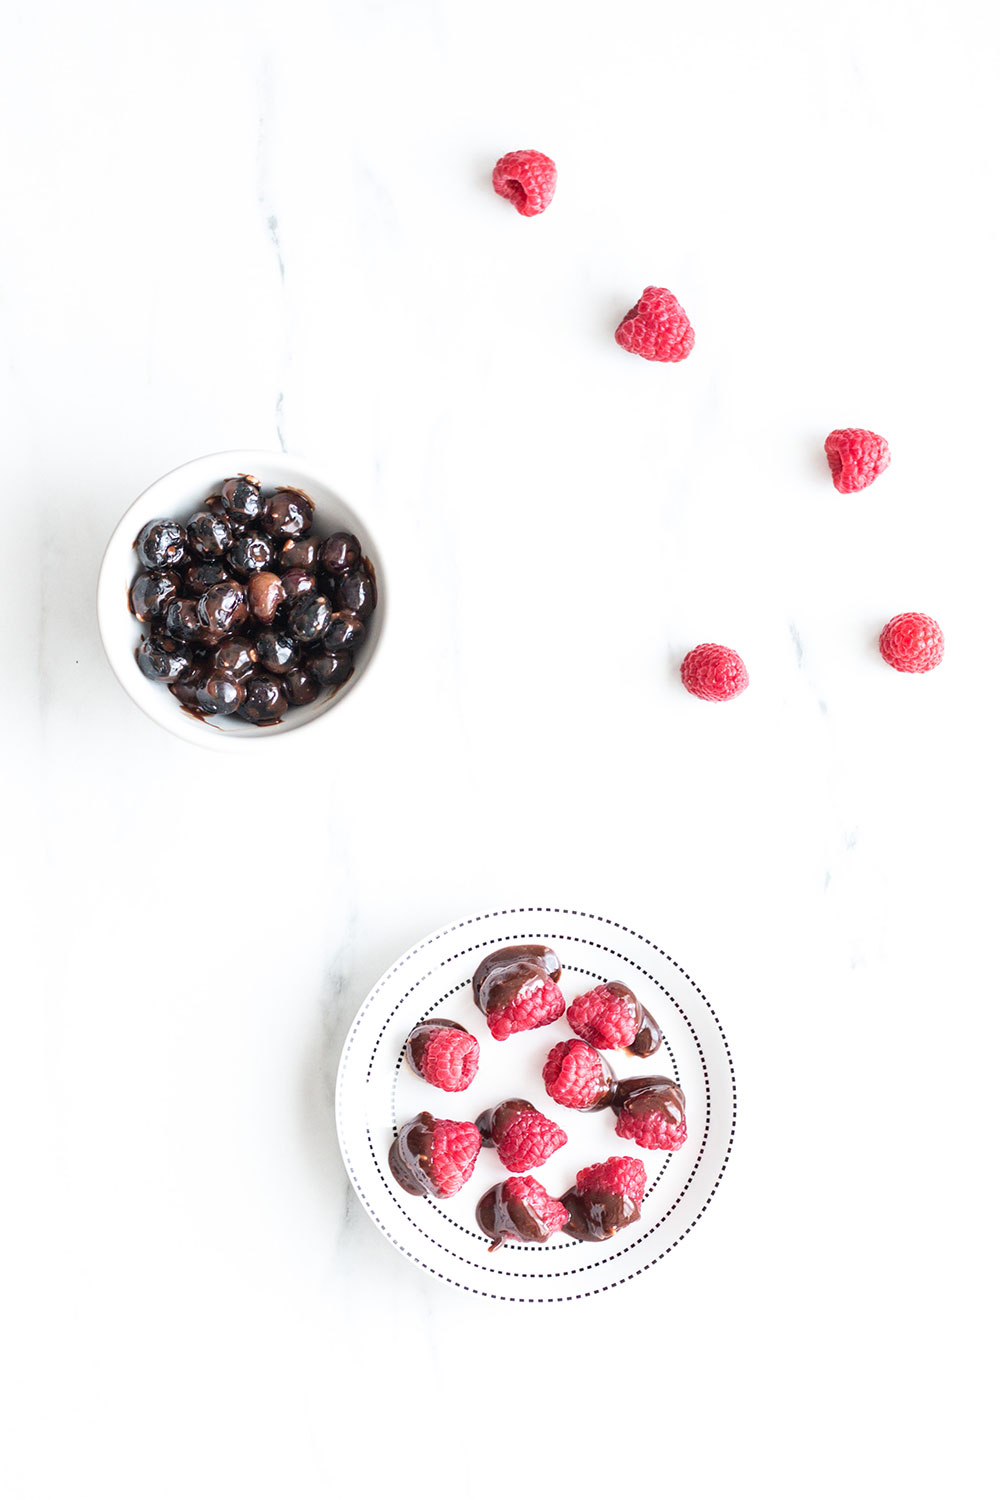 It only takes 5 minutes and 4 ingredients to make this healthy and creamy chocolate dip at home; raw cacao, a superfood that's incredibly rich in magnesium, powerful flavonoids and serotonin; a natural sweetener and 2 healthy fats! https://www.spotebi.com/recipes/healthy-homemade-chocolate-dipped-berries/